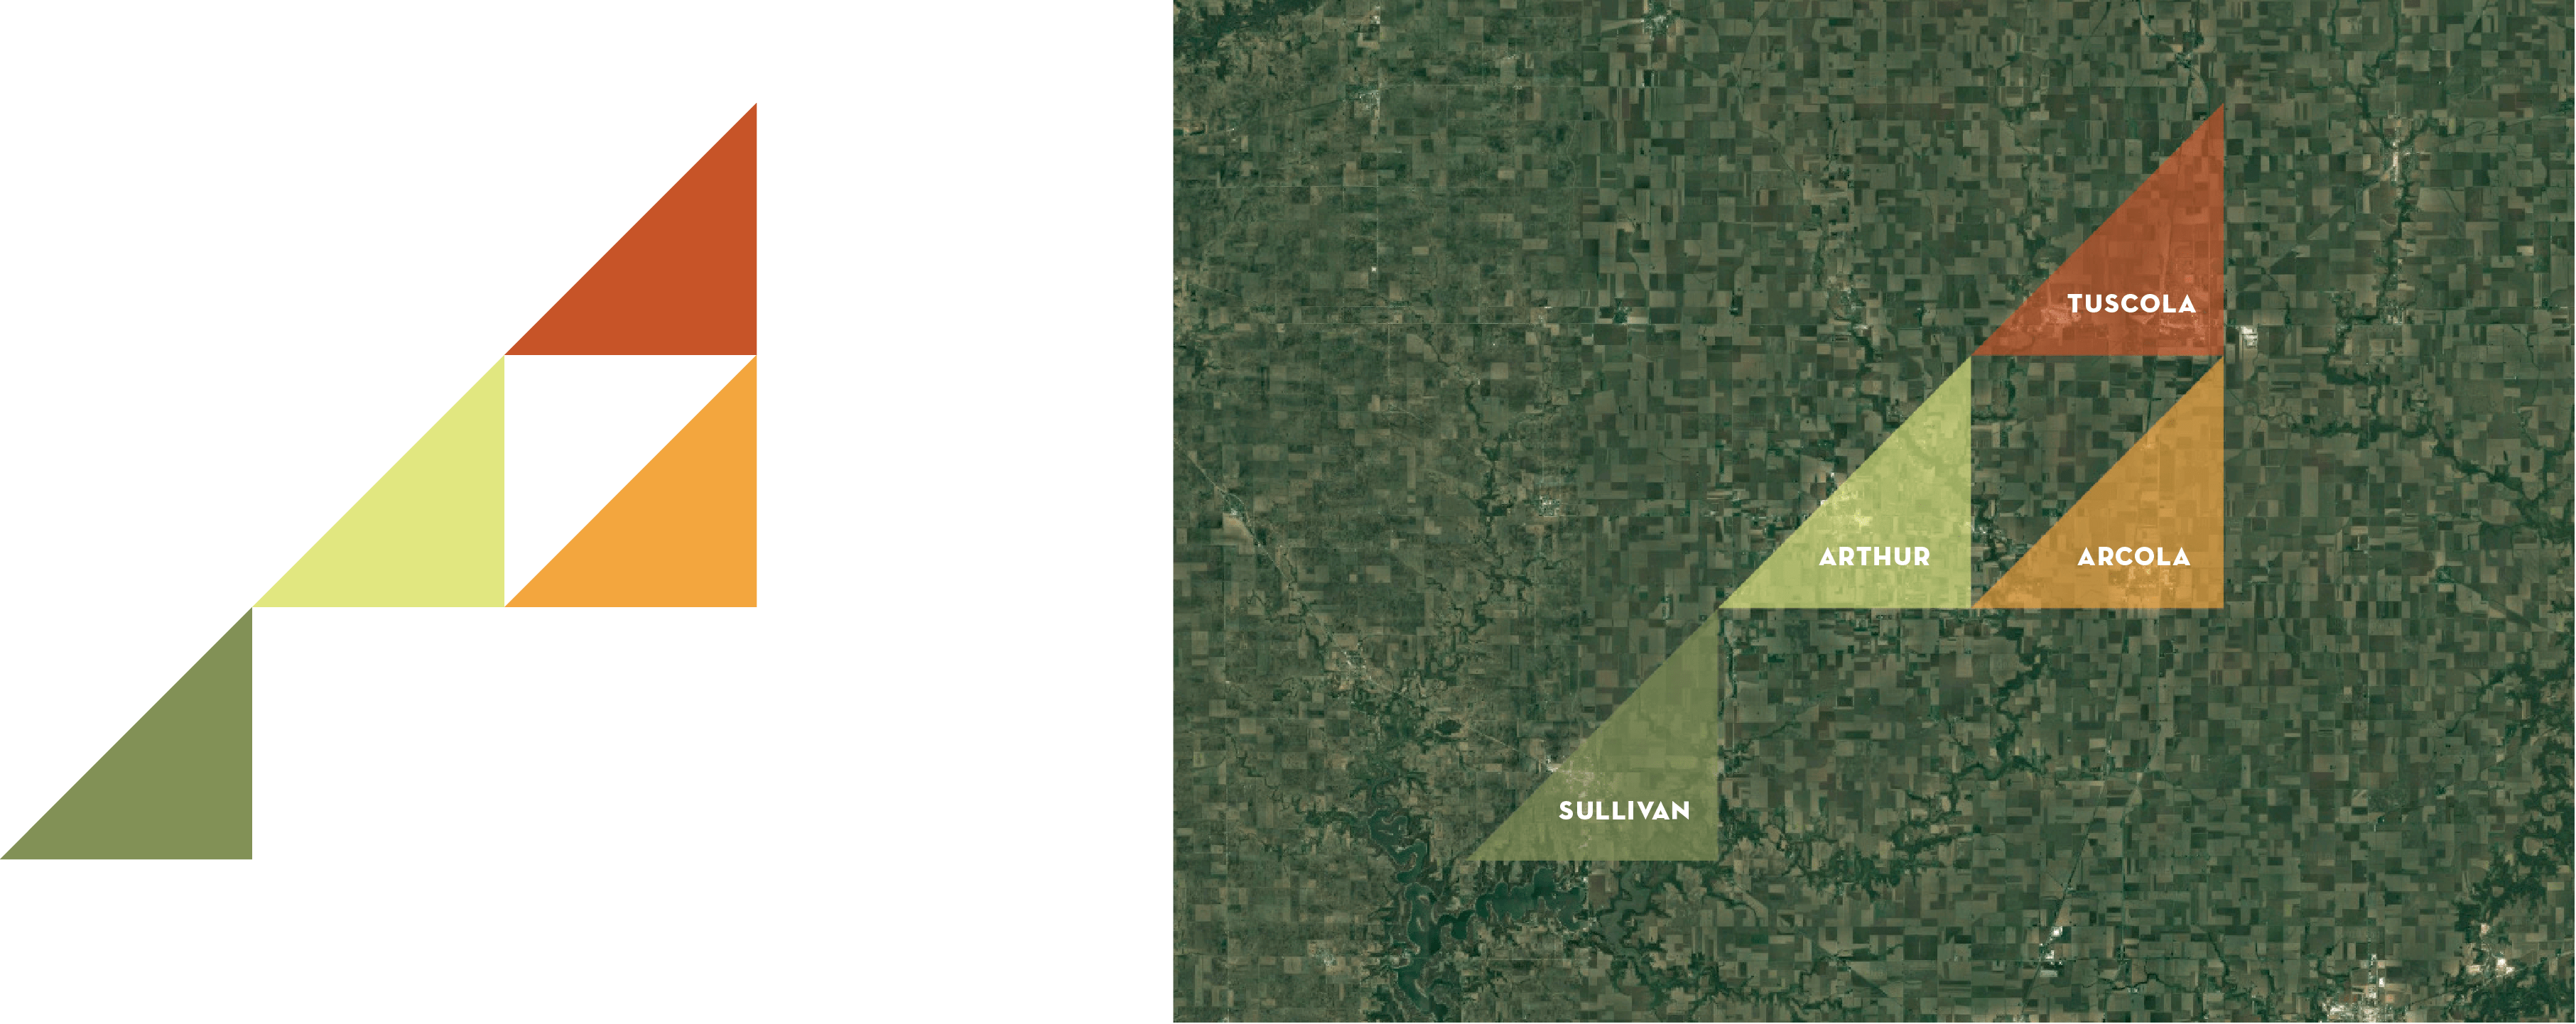 Amish Country of Illinois Branding - Map